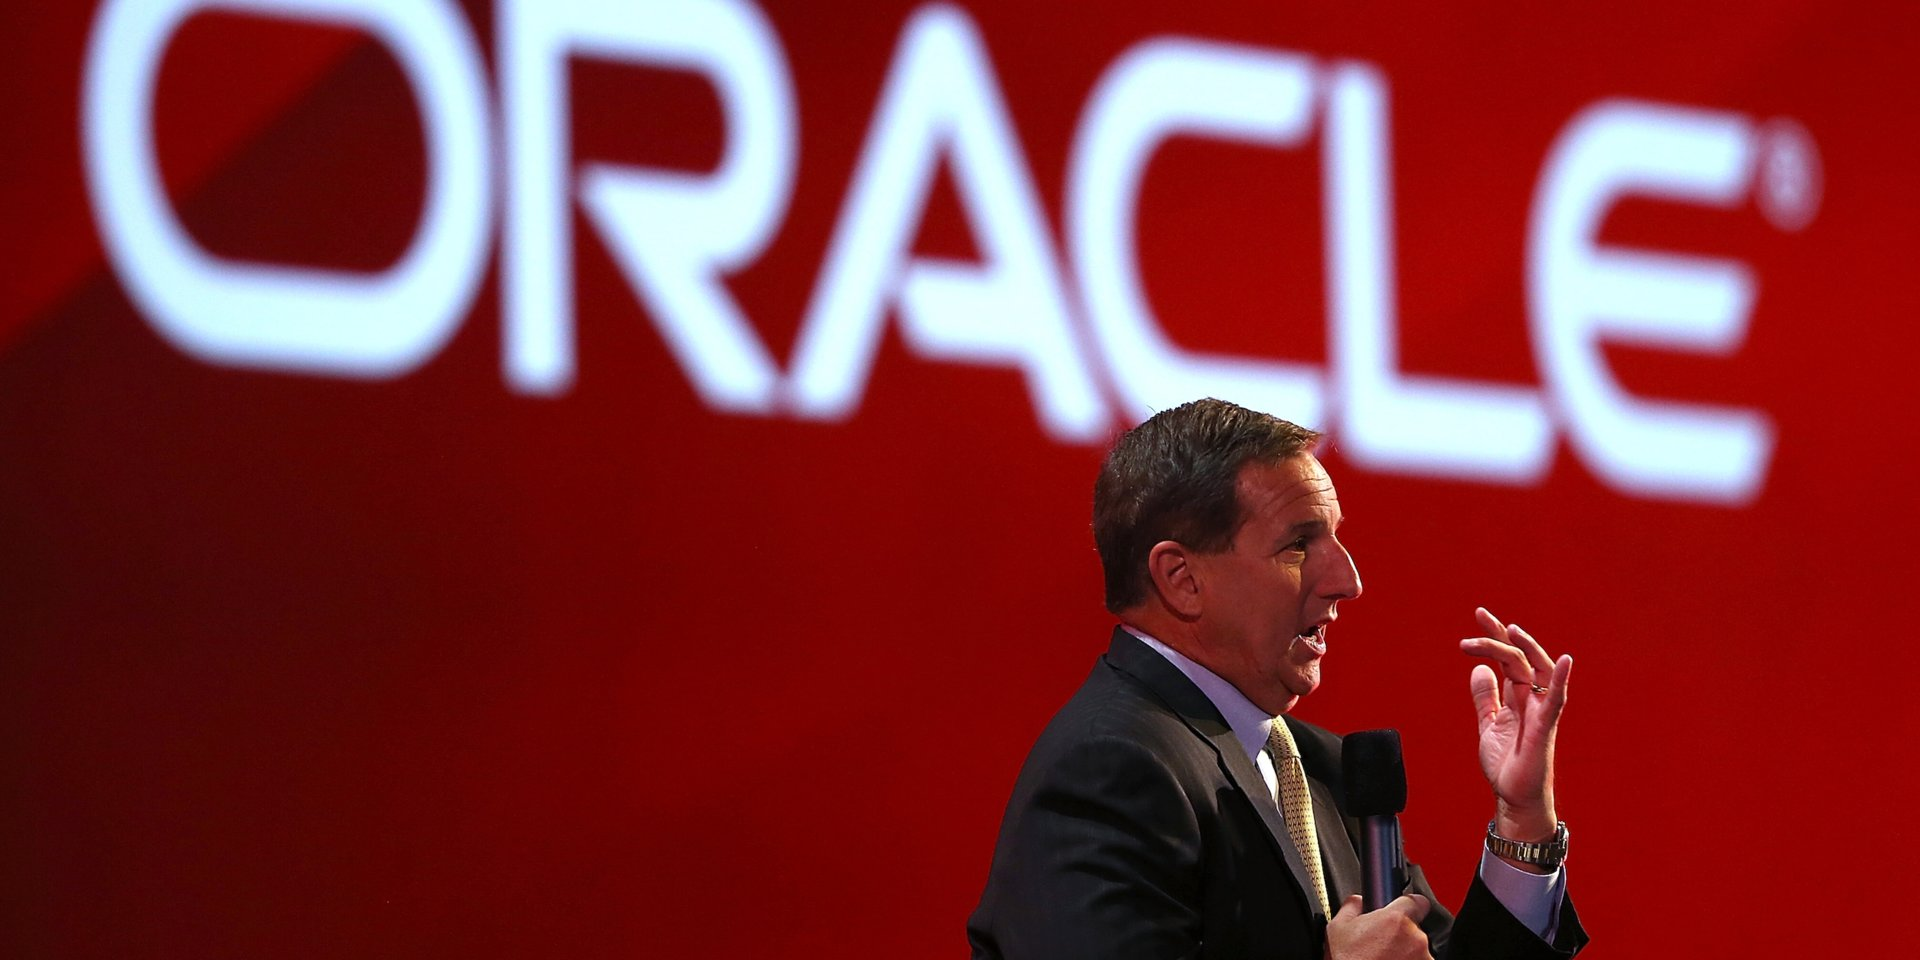 Oracle CEO Mark Hurd is taking a leave of absence, saying he needs 'time focused on my health' (ORCL)